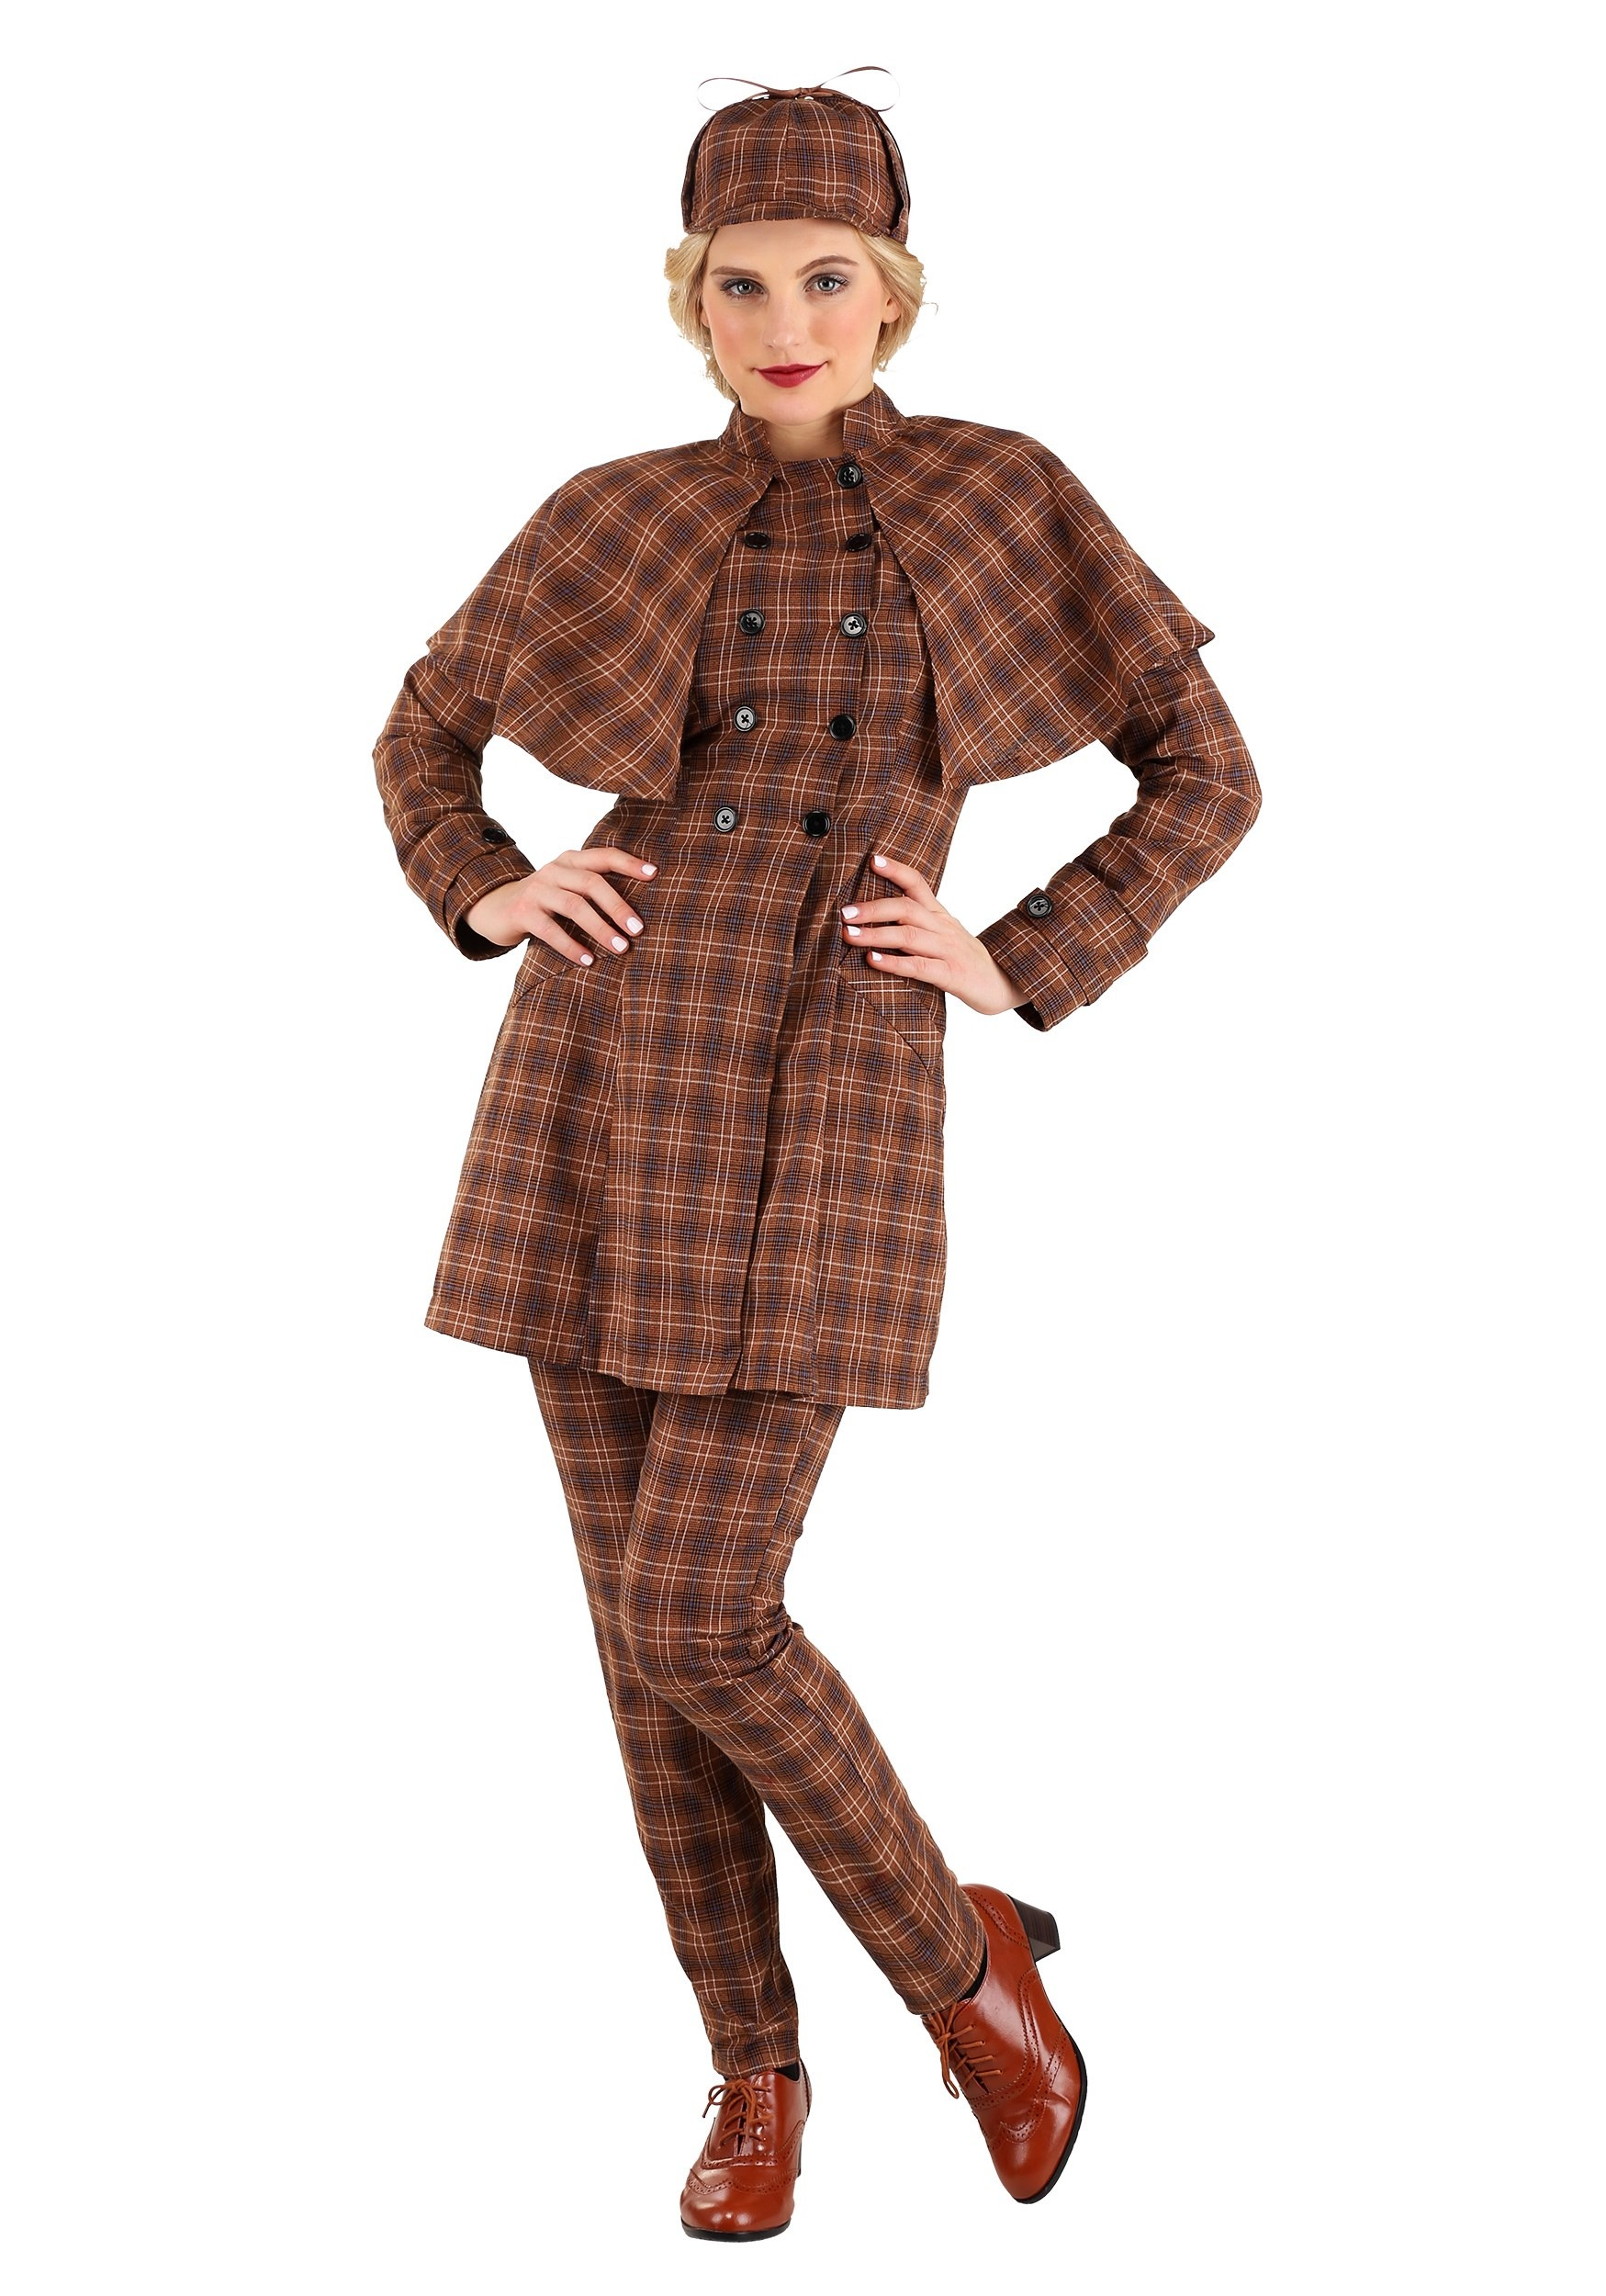 Sherlock Holmes Women's Costume-book character costume ideas for adults